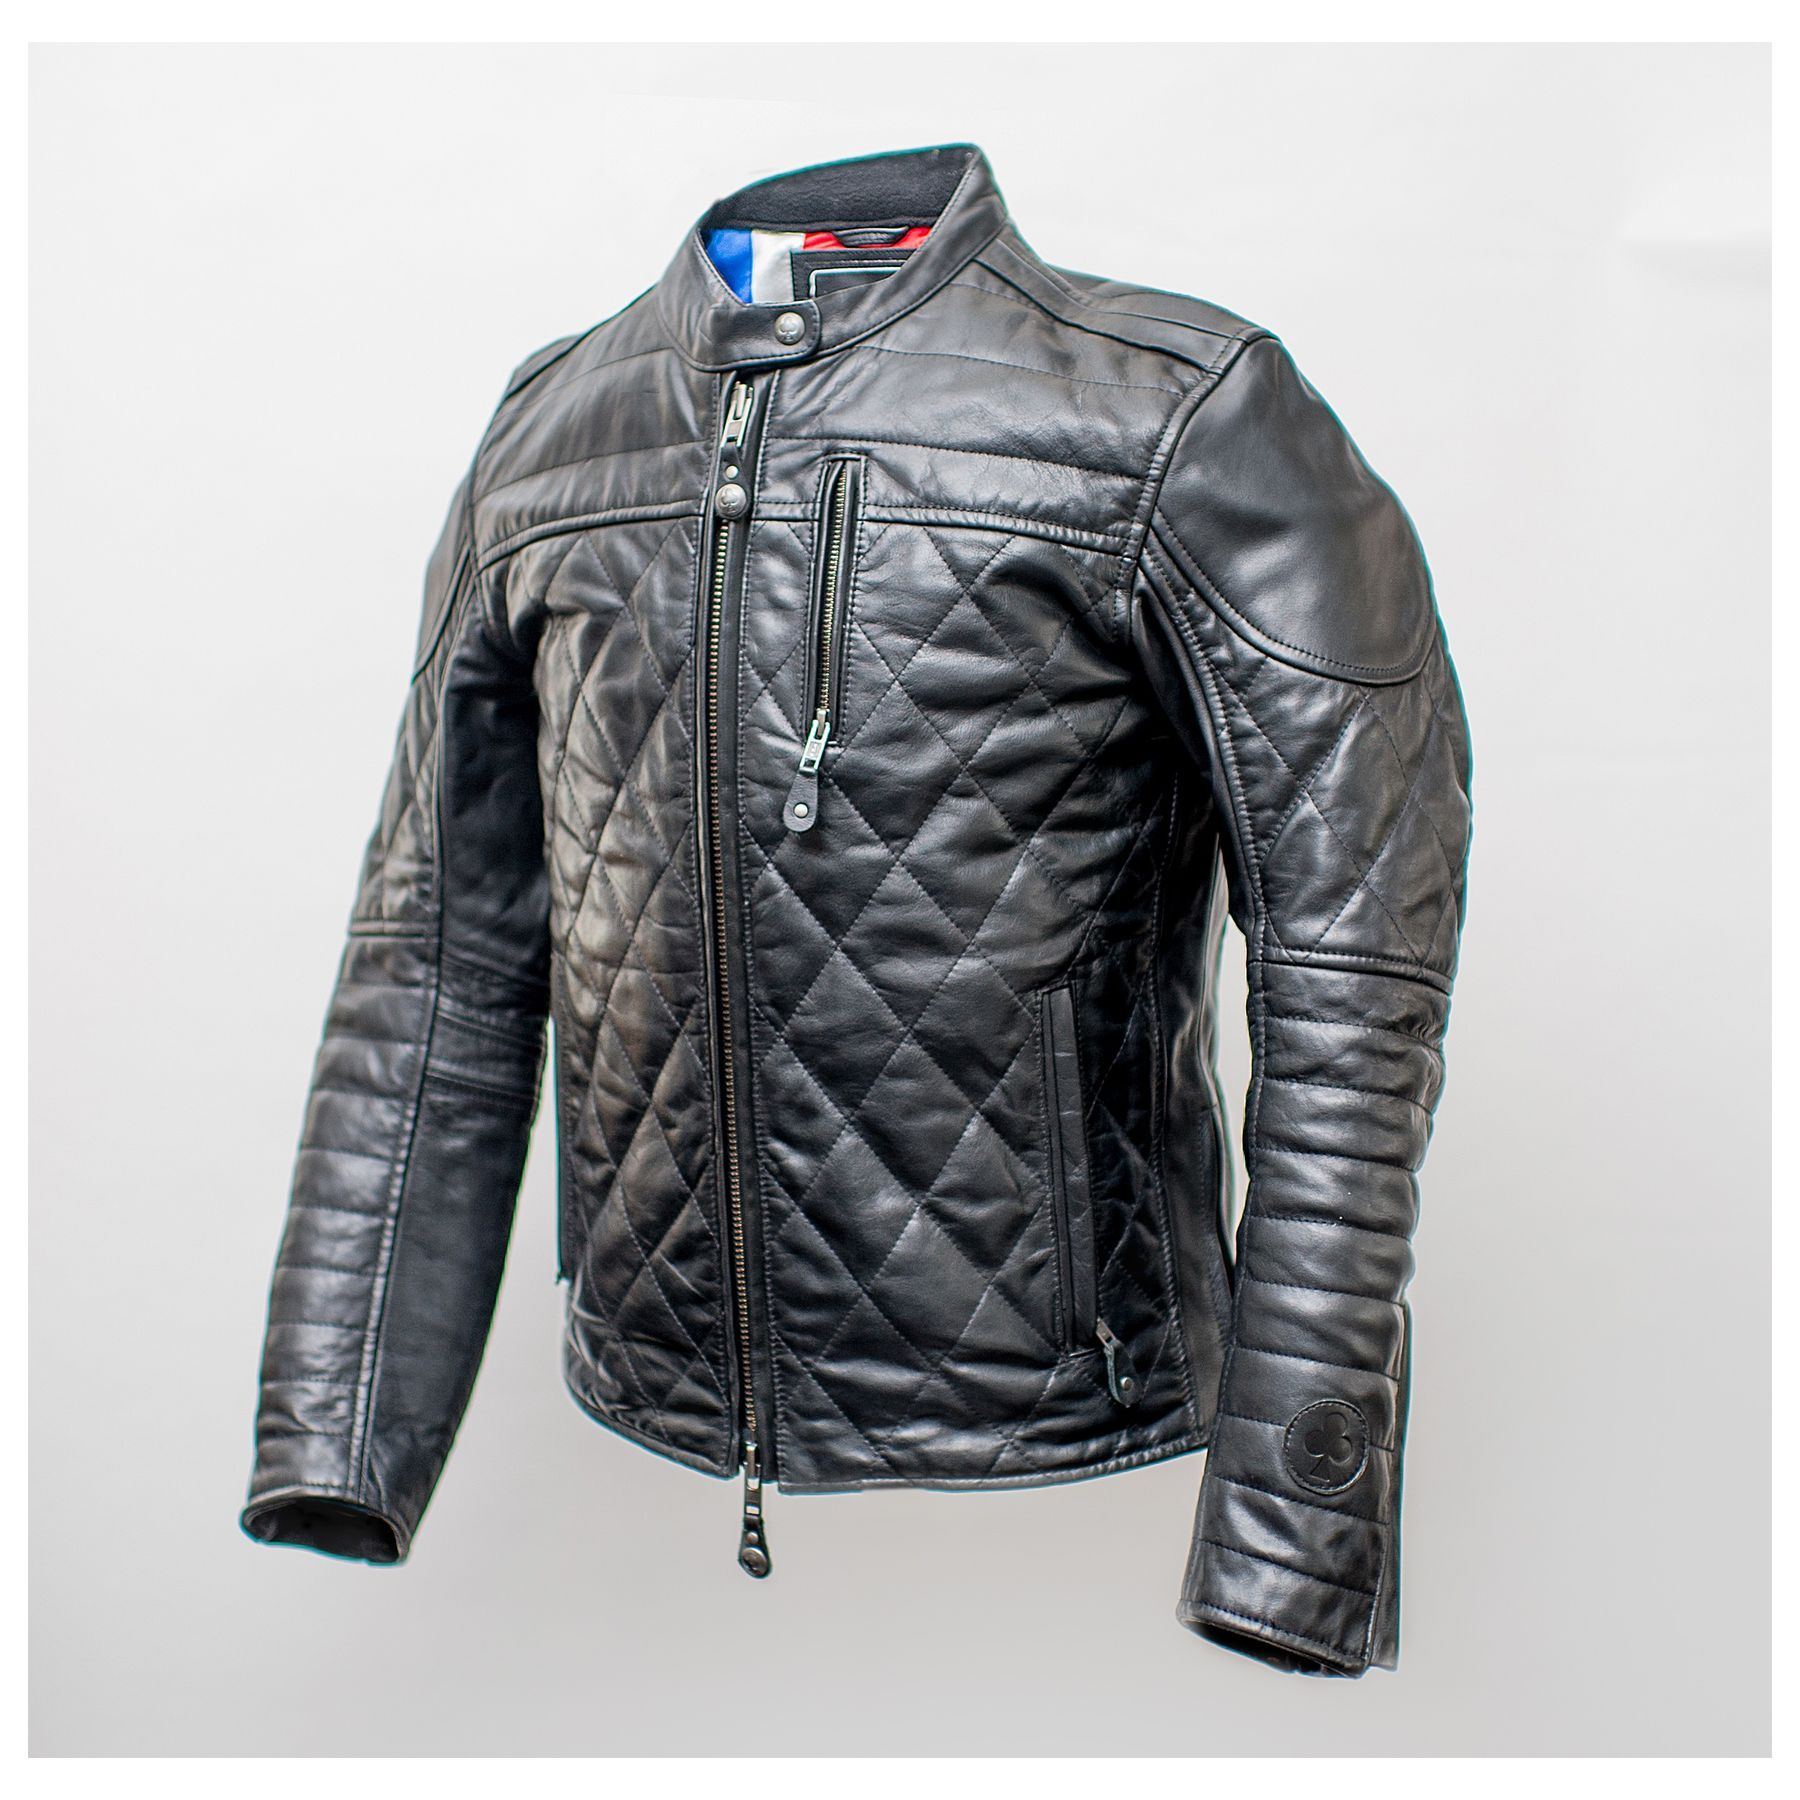 Ace Cafe Box Hill Jacket Cafe Racer Jackets Classic Motorcycles